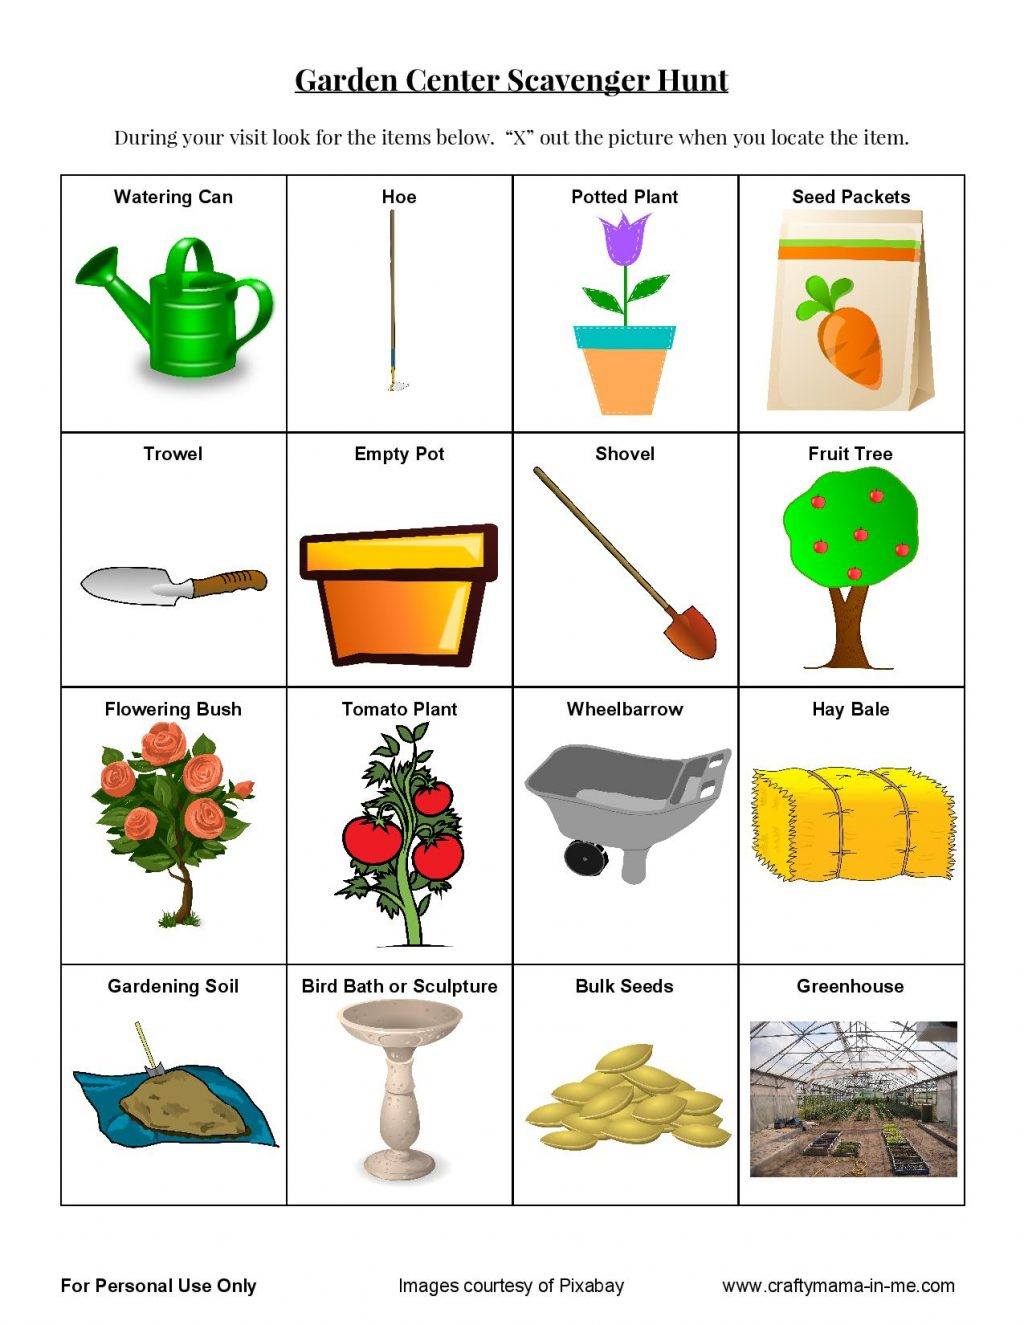 Fun Garden Center Scavenger Hunt for Kids Free Printable Crafty Mama in ME